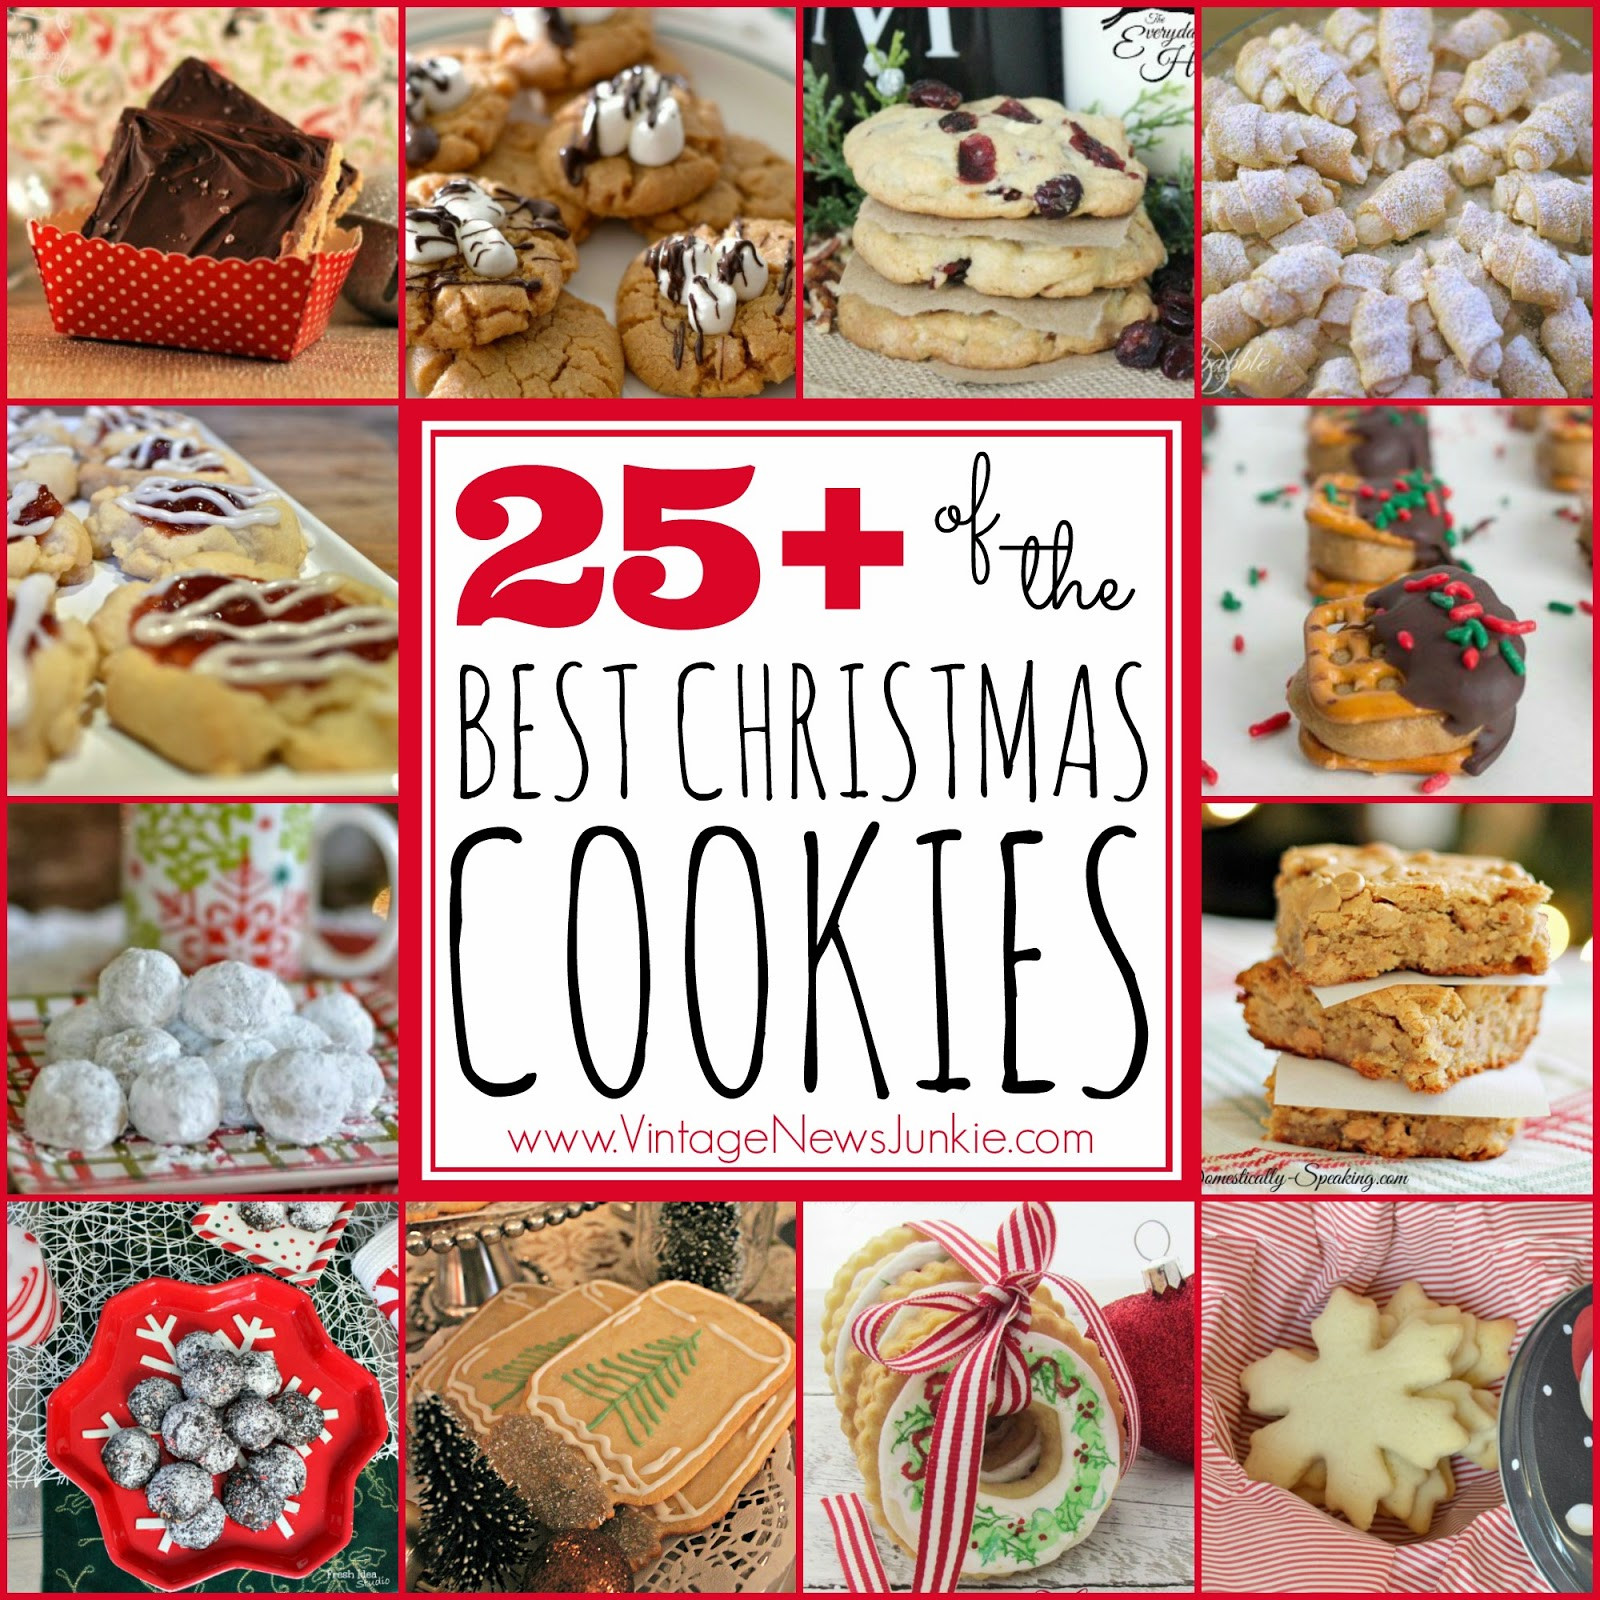 The Best Christmas Cookies  25 OF THE BEST CHRISTMAS COOKIE RECIPES Handy DIY